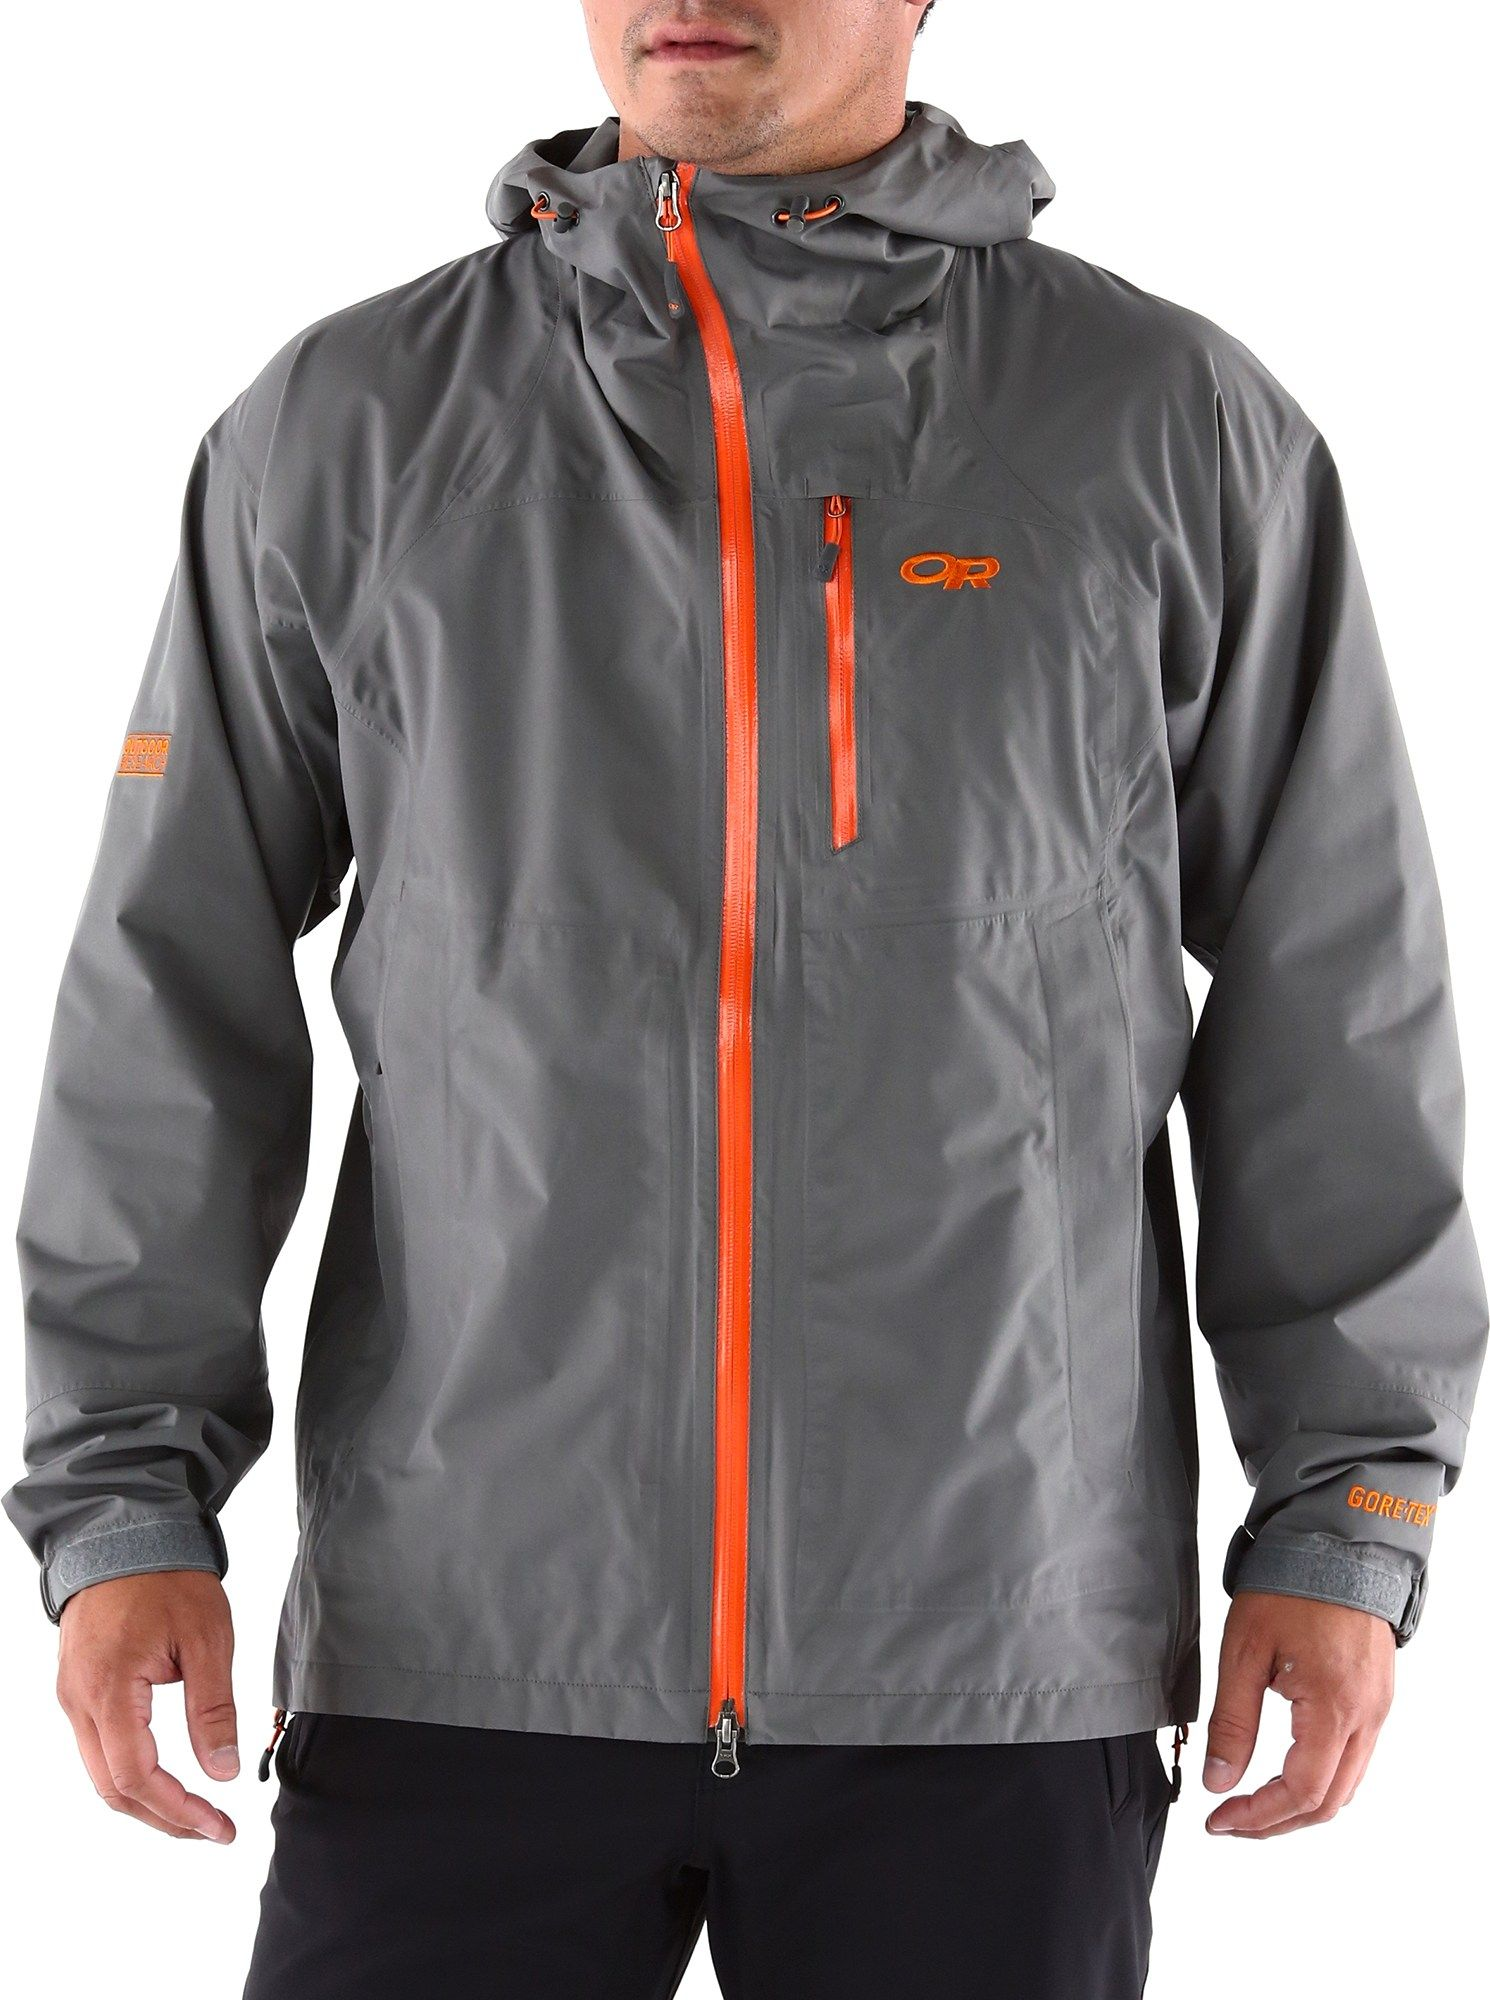 Outdoor Research Foray Rain Jacket - Men's | REI Co-op ...